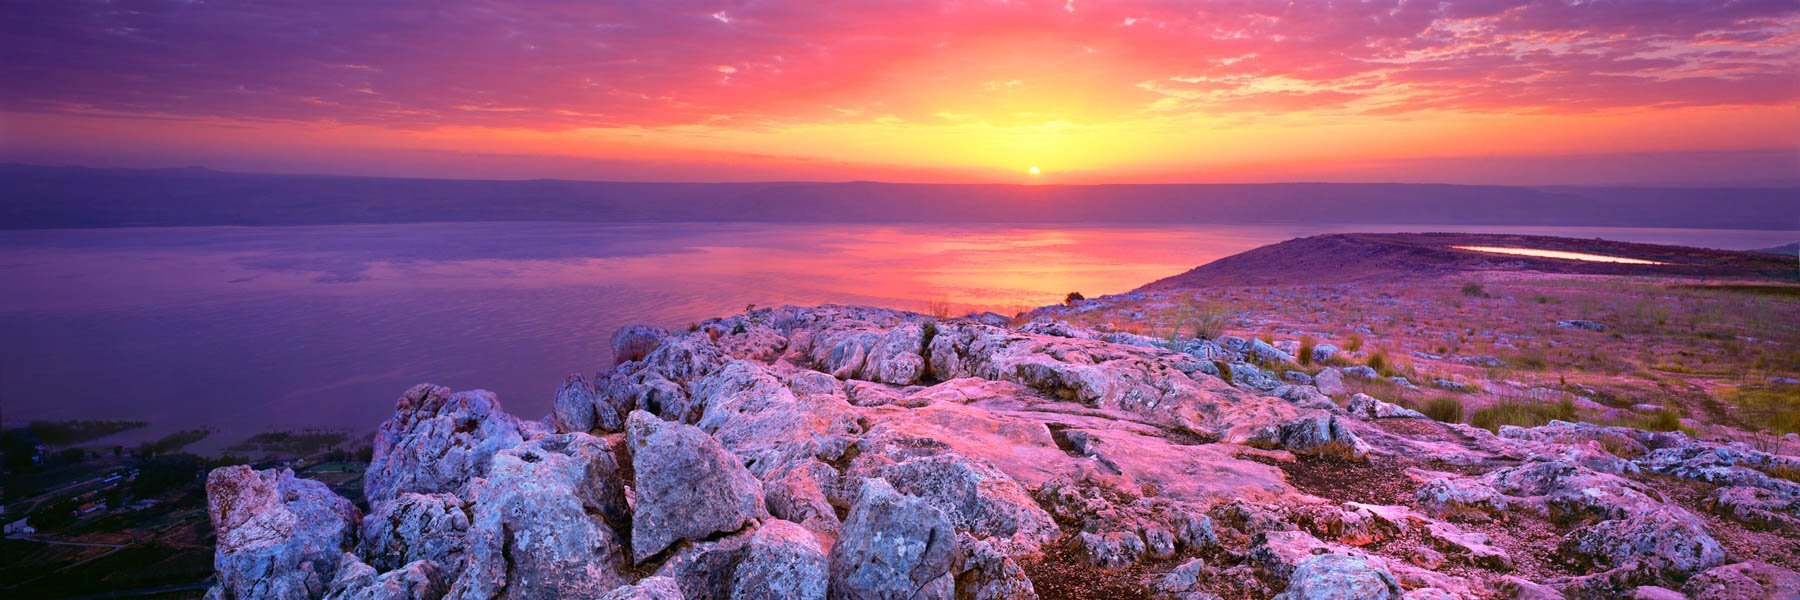 A red and golden sunrise over Mt Arbel, Israel.